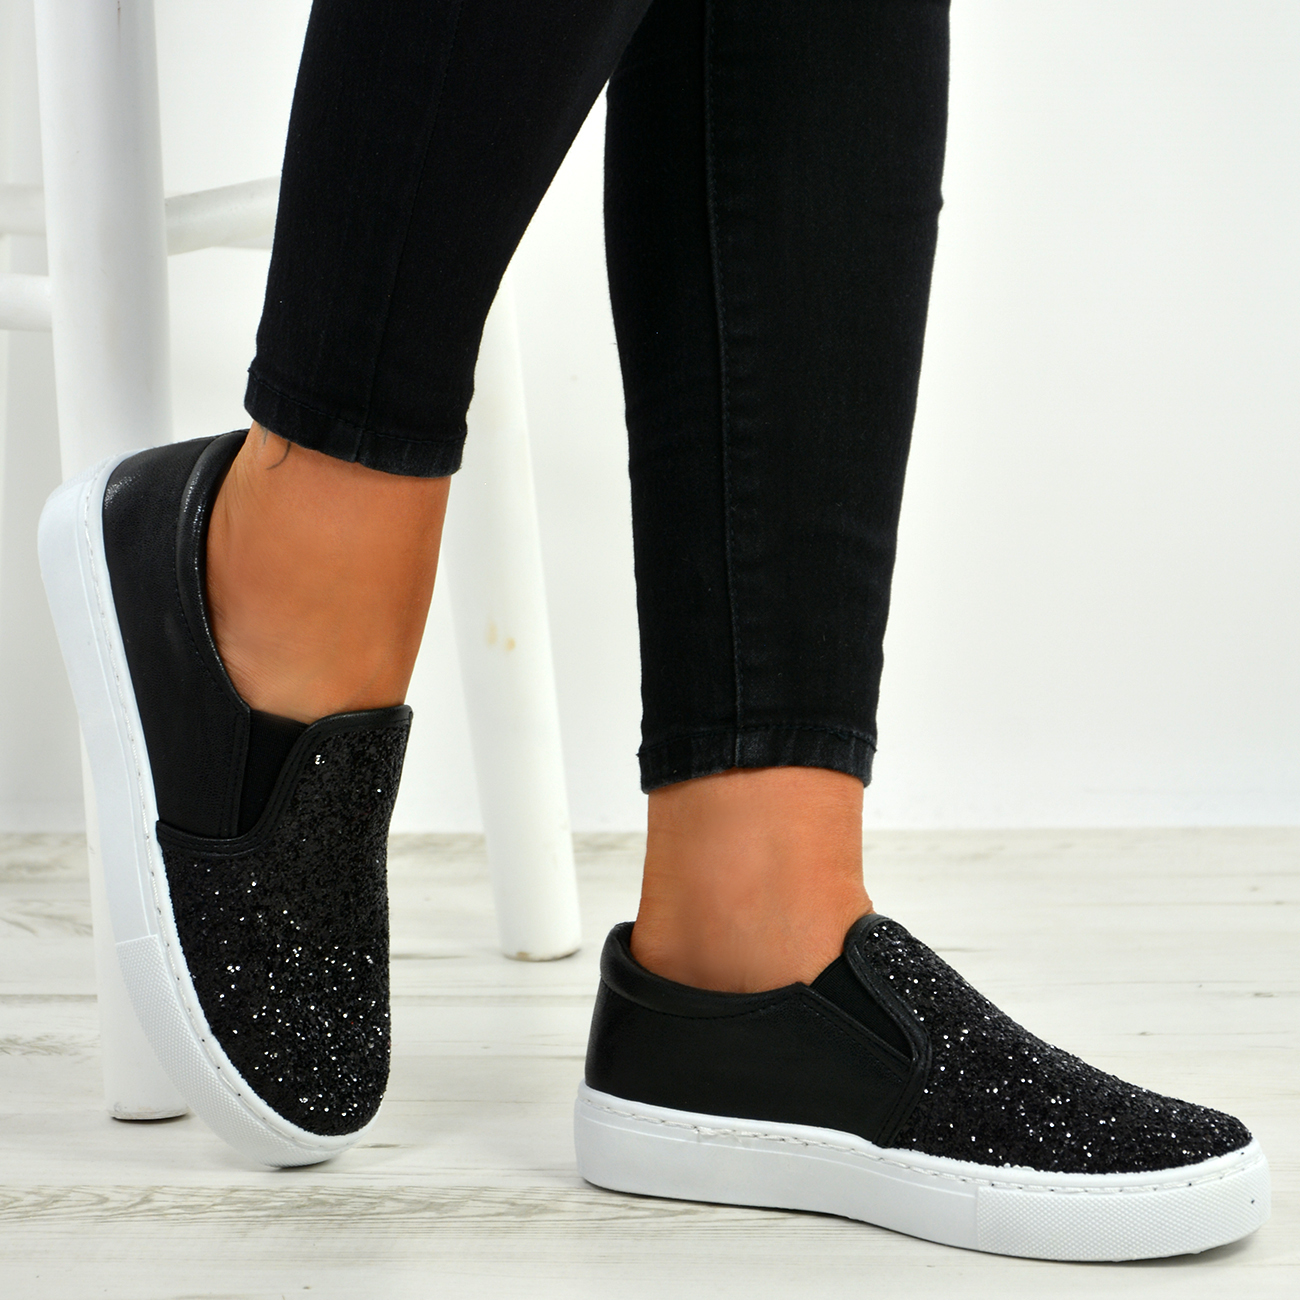 NEW WOMENS LADIES FLAT FAUX LEATHER FASHION TRAINERS PLIMSOLLS SNEAKERS SIZE 3-8